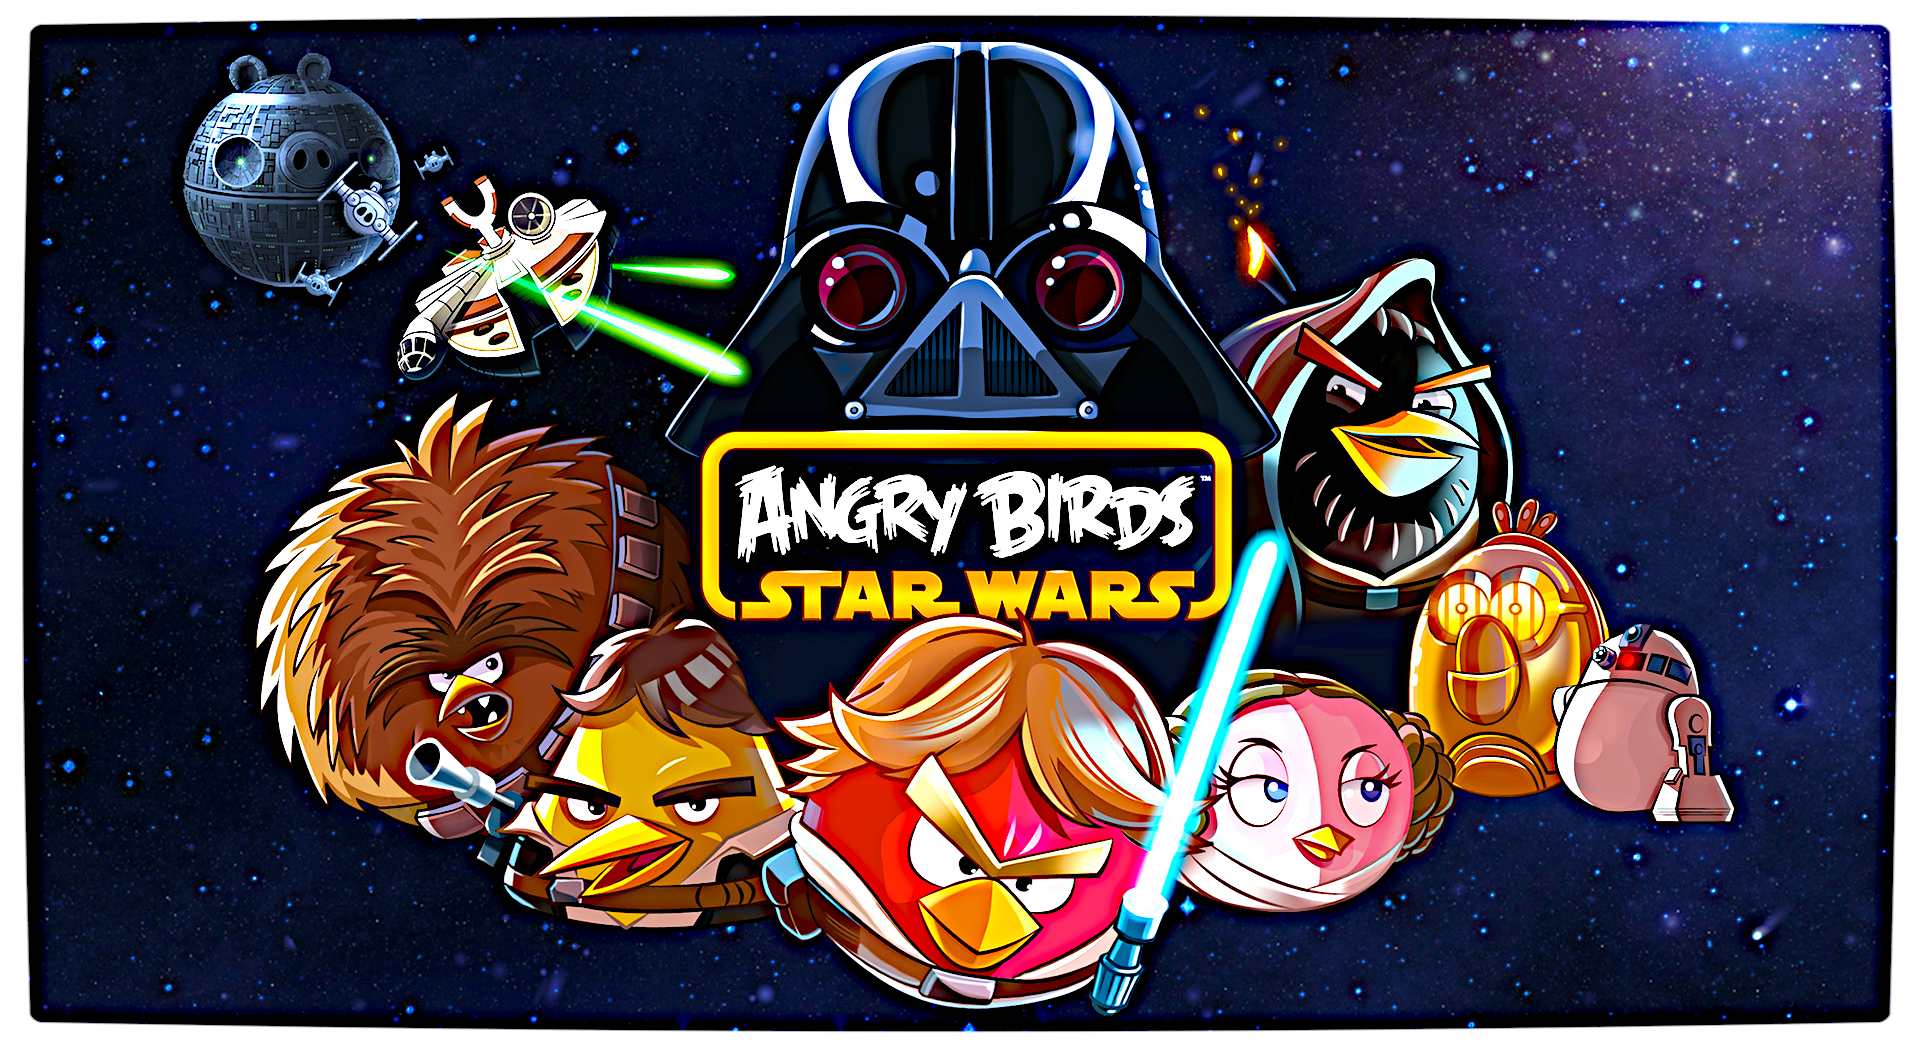 Coloriage angry birds star wars gratuit imprimer - Telecharger angry birds star wars gratuit ...